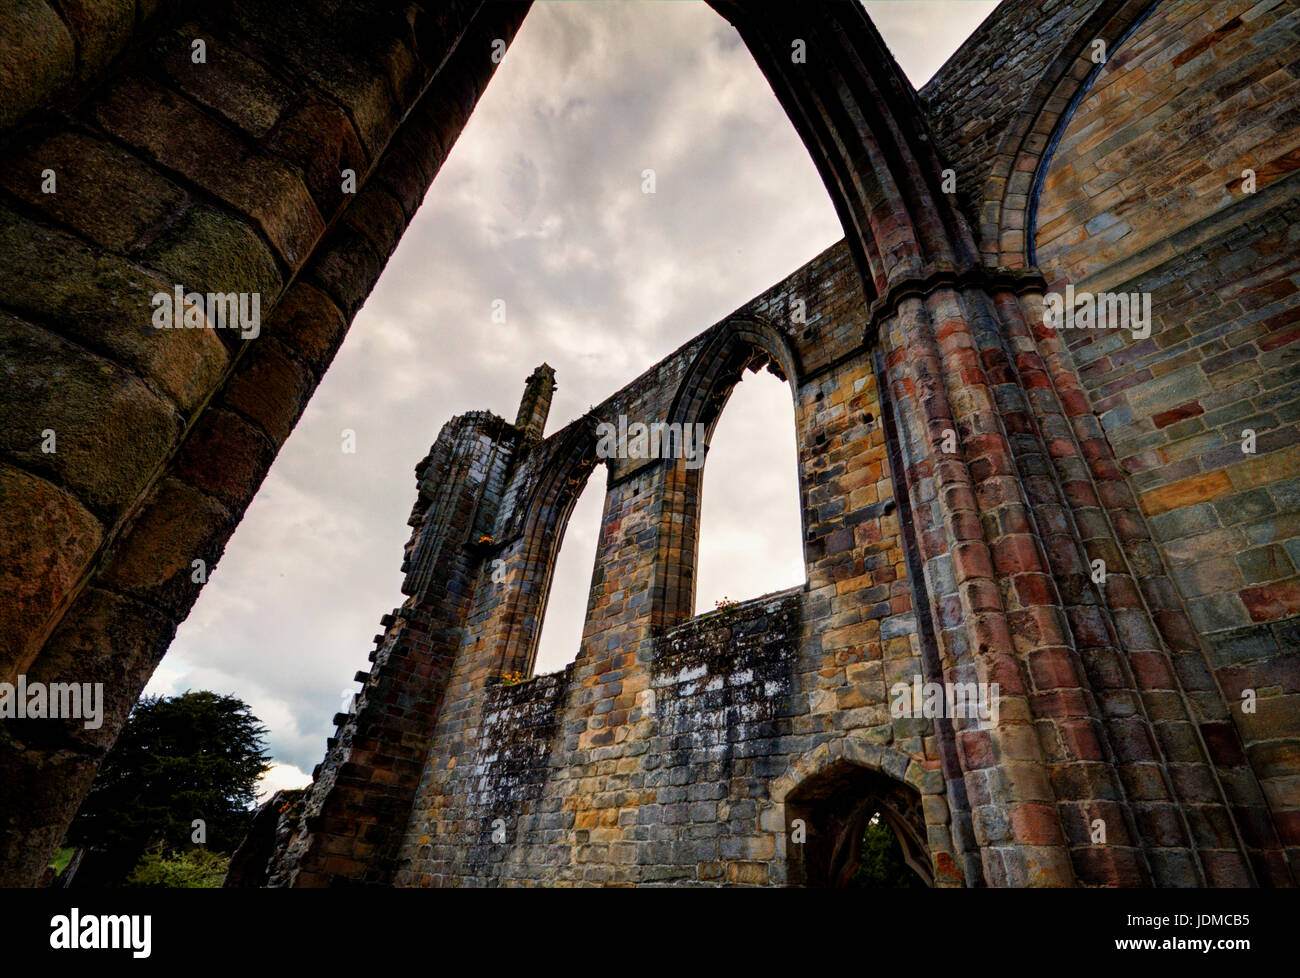 A dramatic perspective of a section of Bolton Abbey - Stock Image